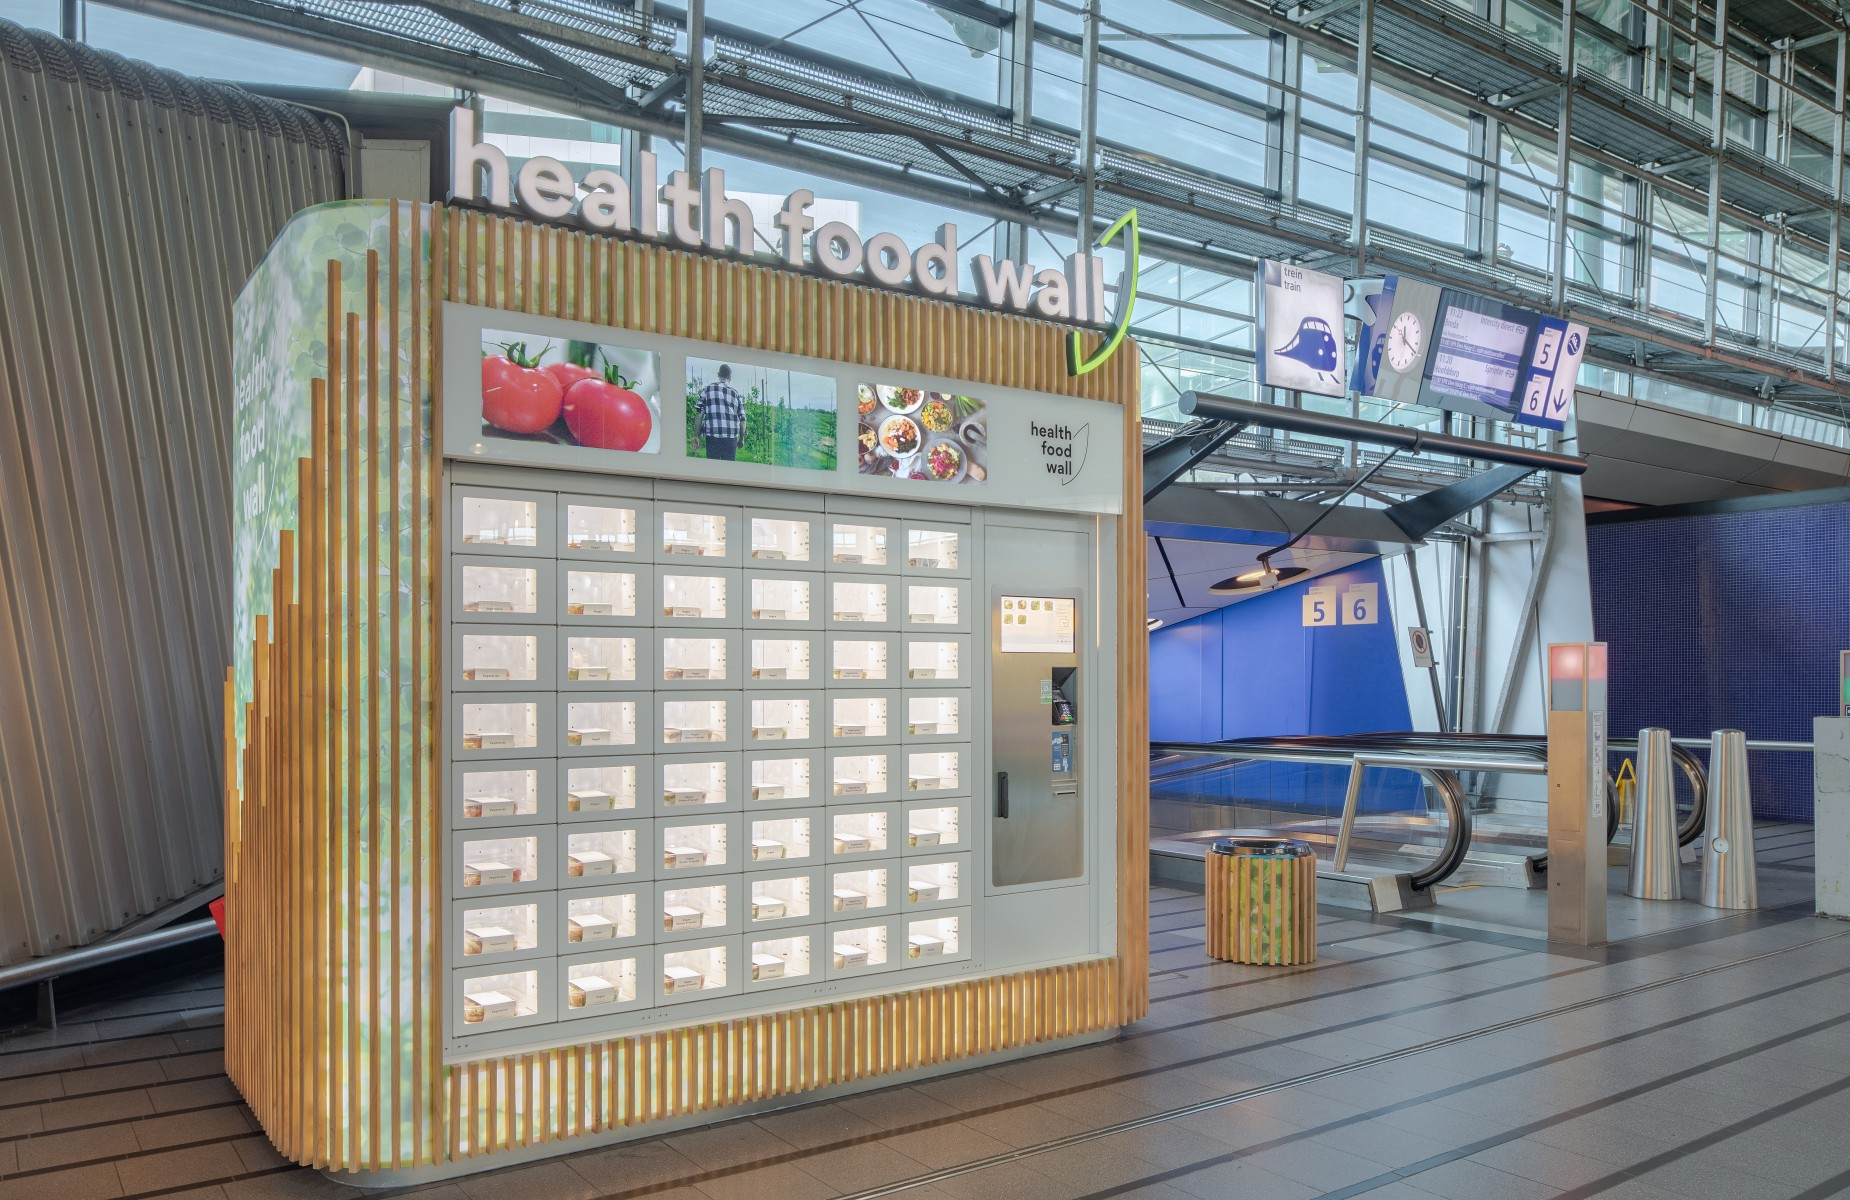 Healthfoodwall_standardstudio5